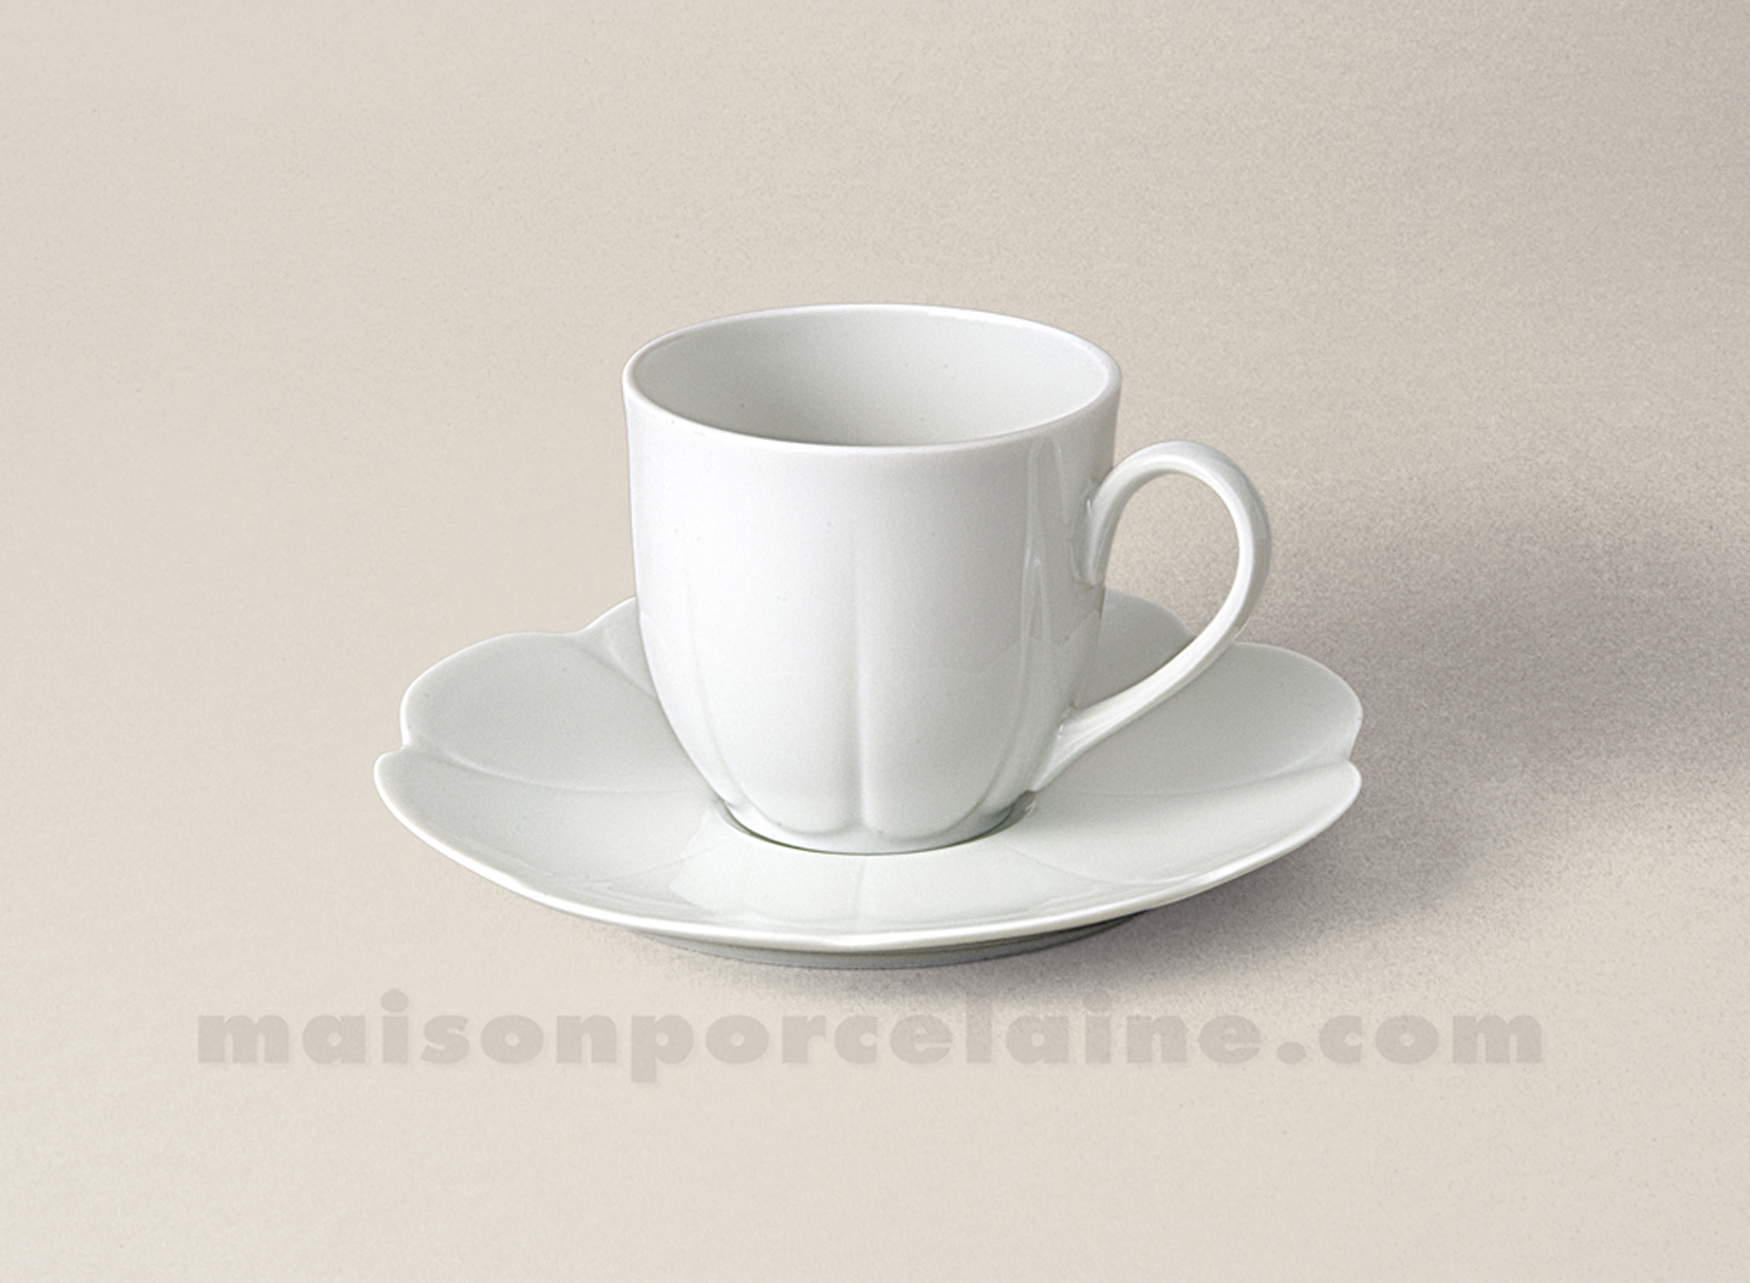 tasse cafe soucoupe limoges porcelaine blanche nymphea 10cl maison de la porcelaine. Black Bedroom Furniture Sets. Home Design Ideas